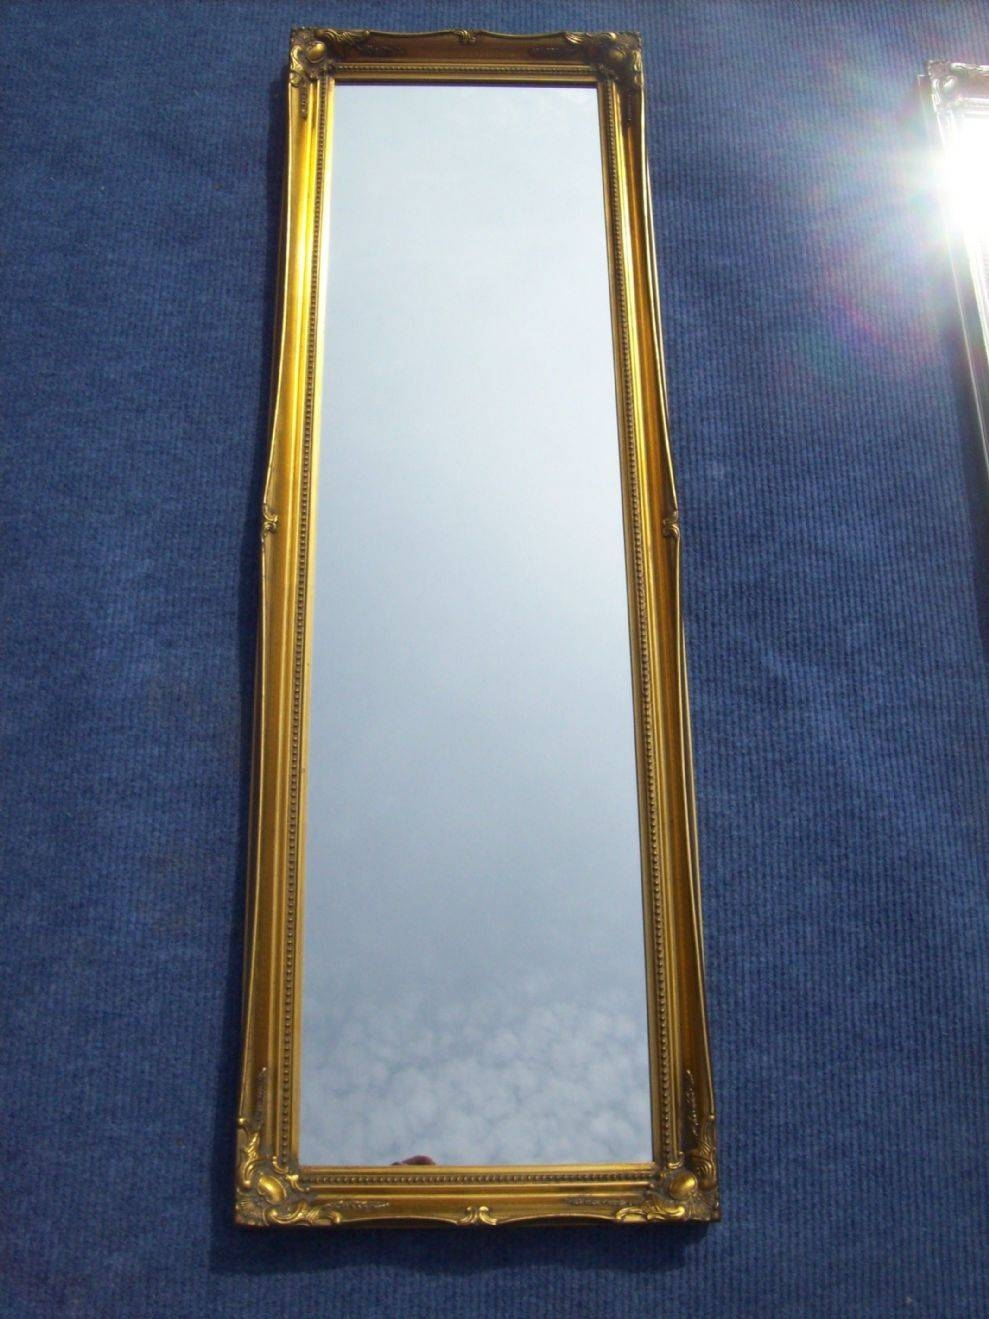 Antique Gold Full Length Dressing Mirror with regard to Gold Full Length Mirrors (Image 1 of 15)